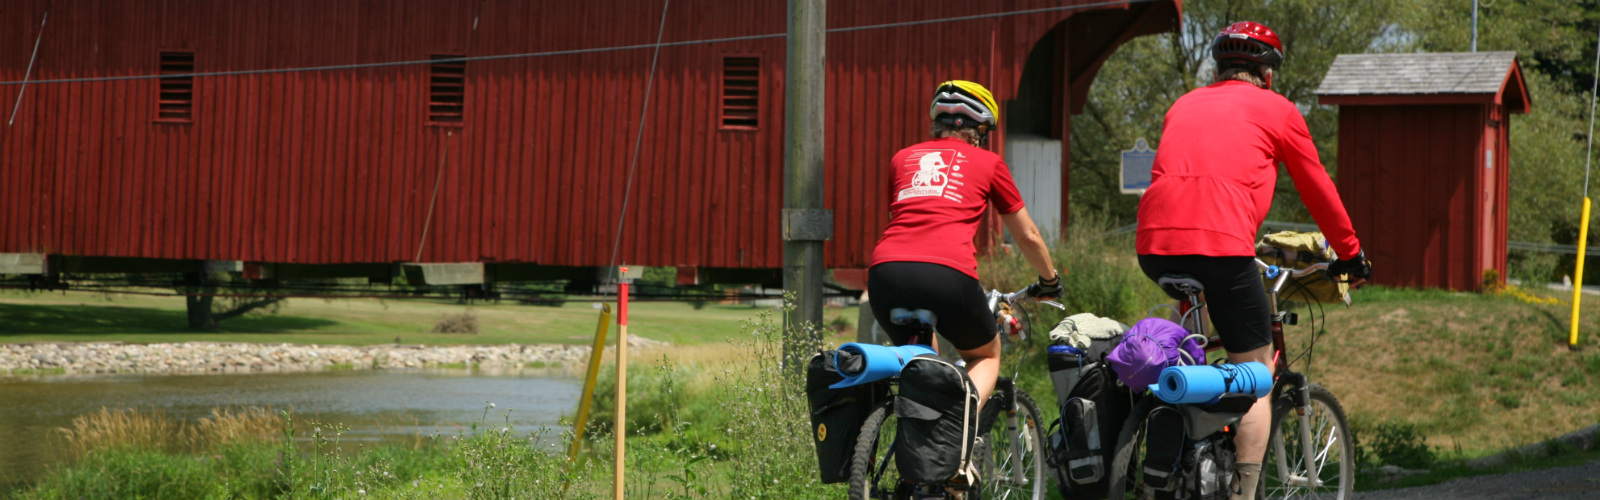 Biking towards covered bridge